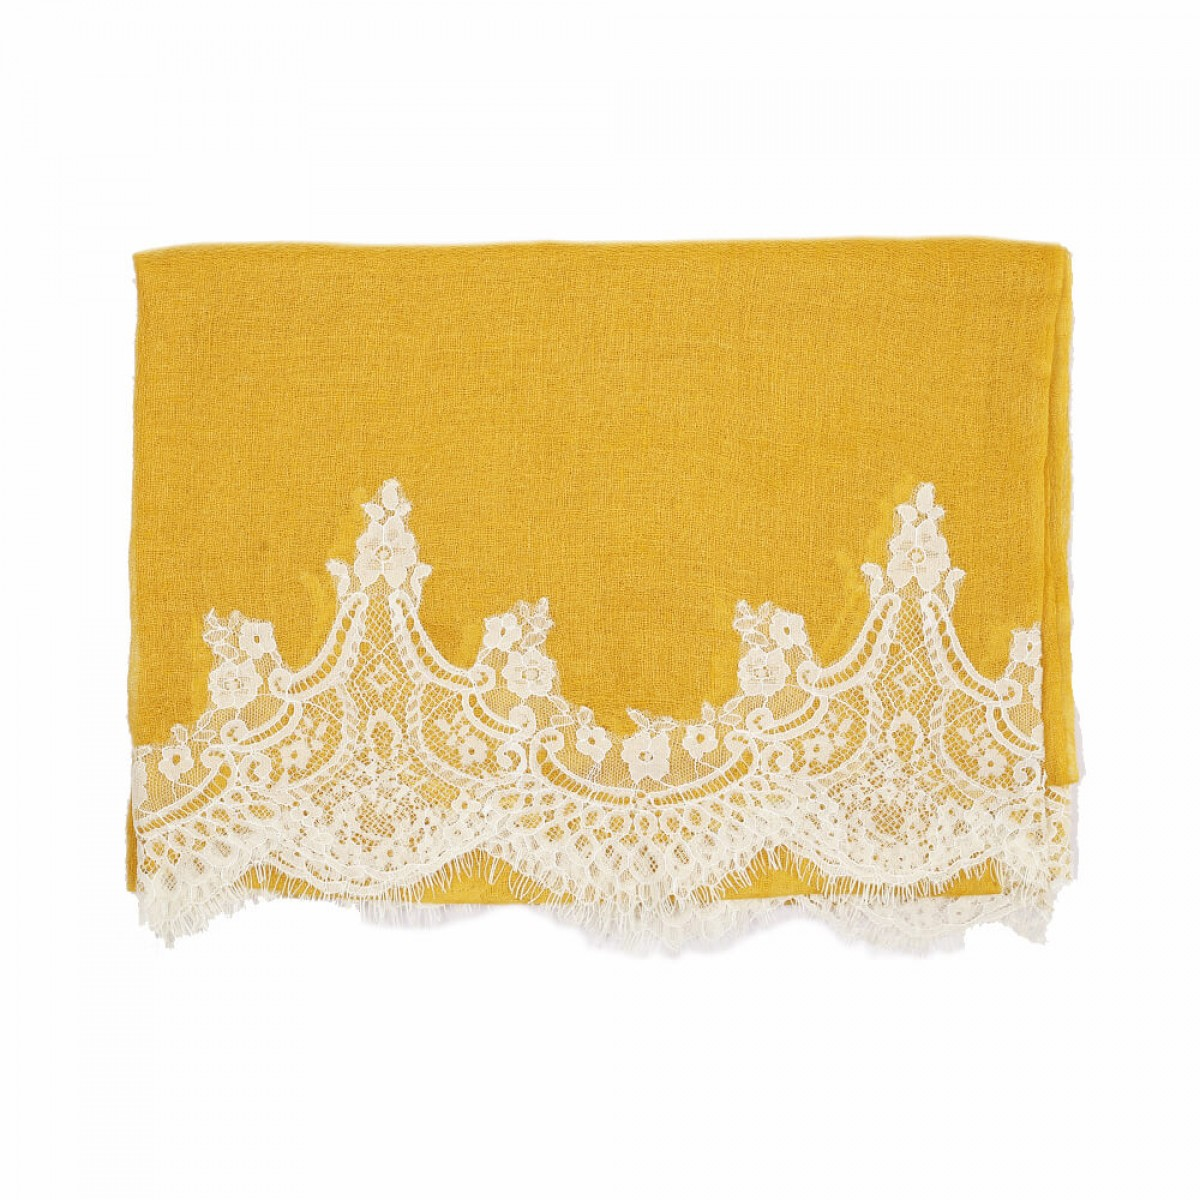 Lace Sheer Pashmina Scarf - Honey